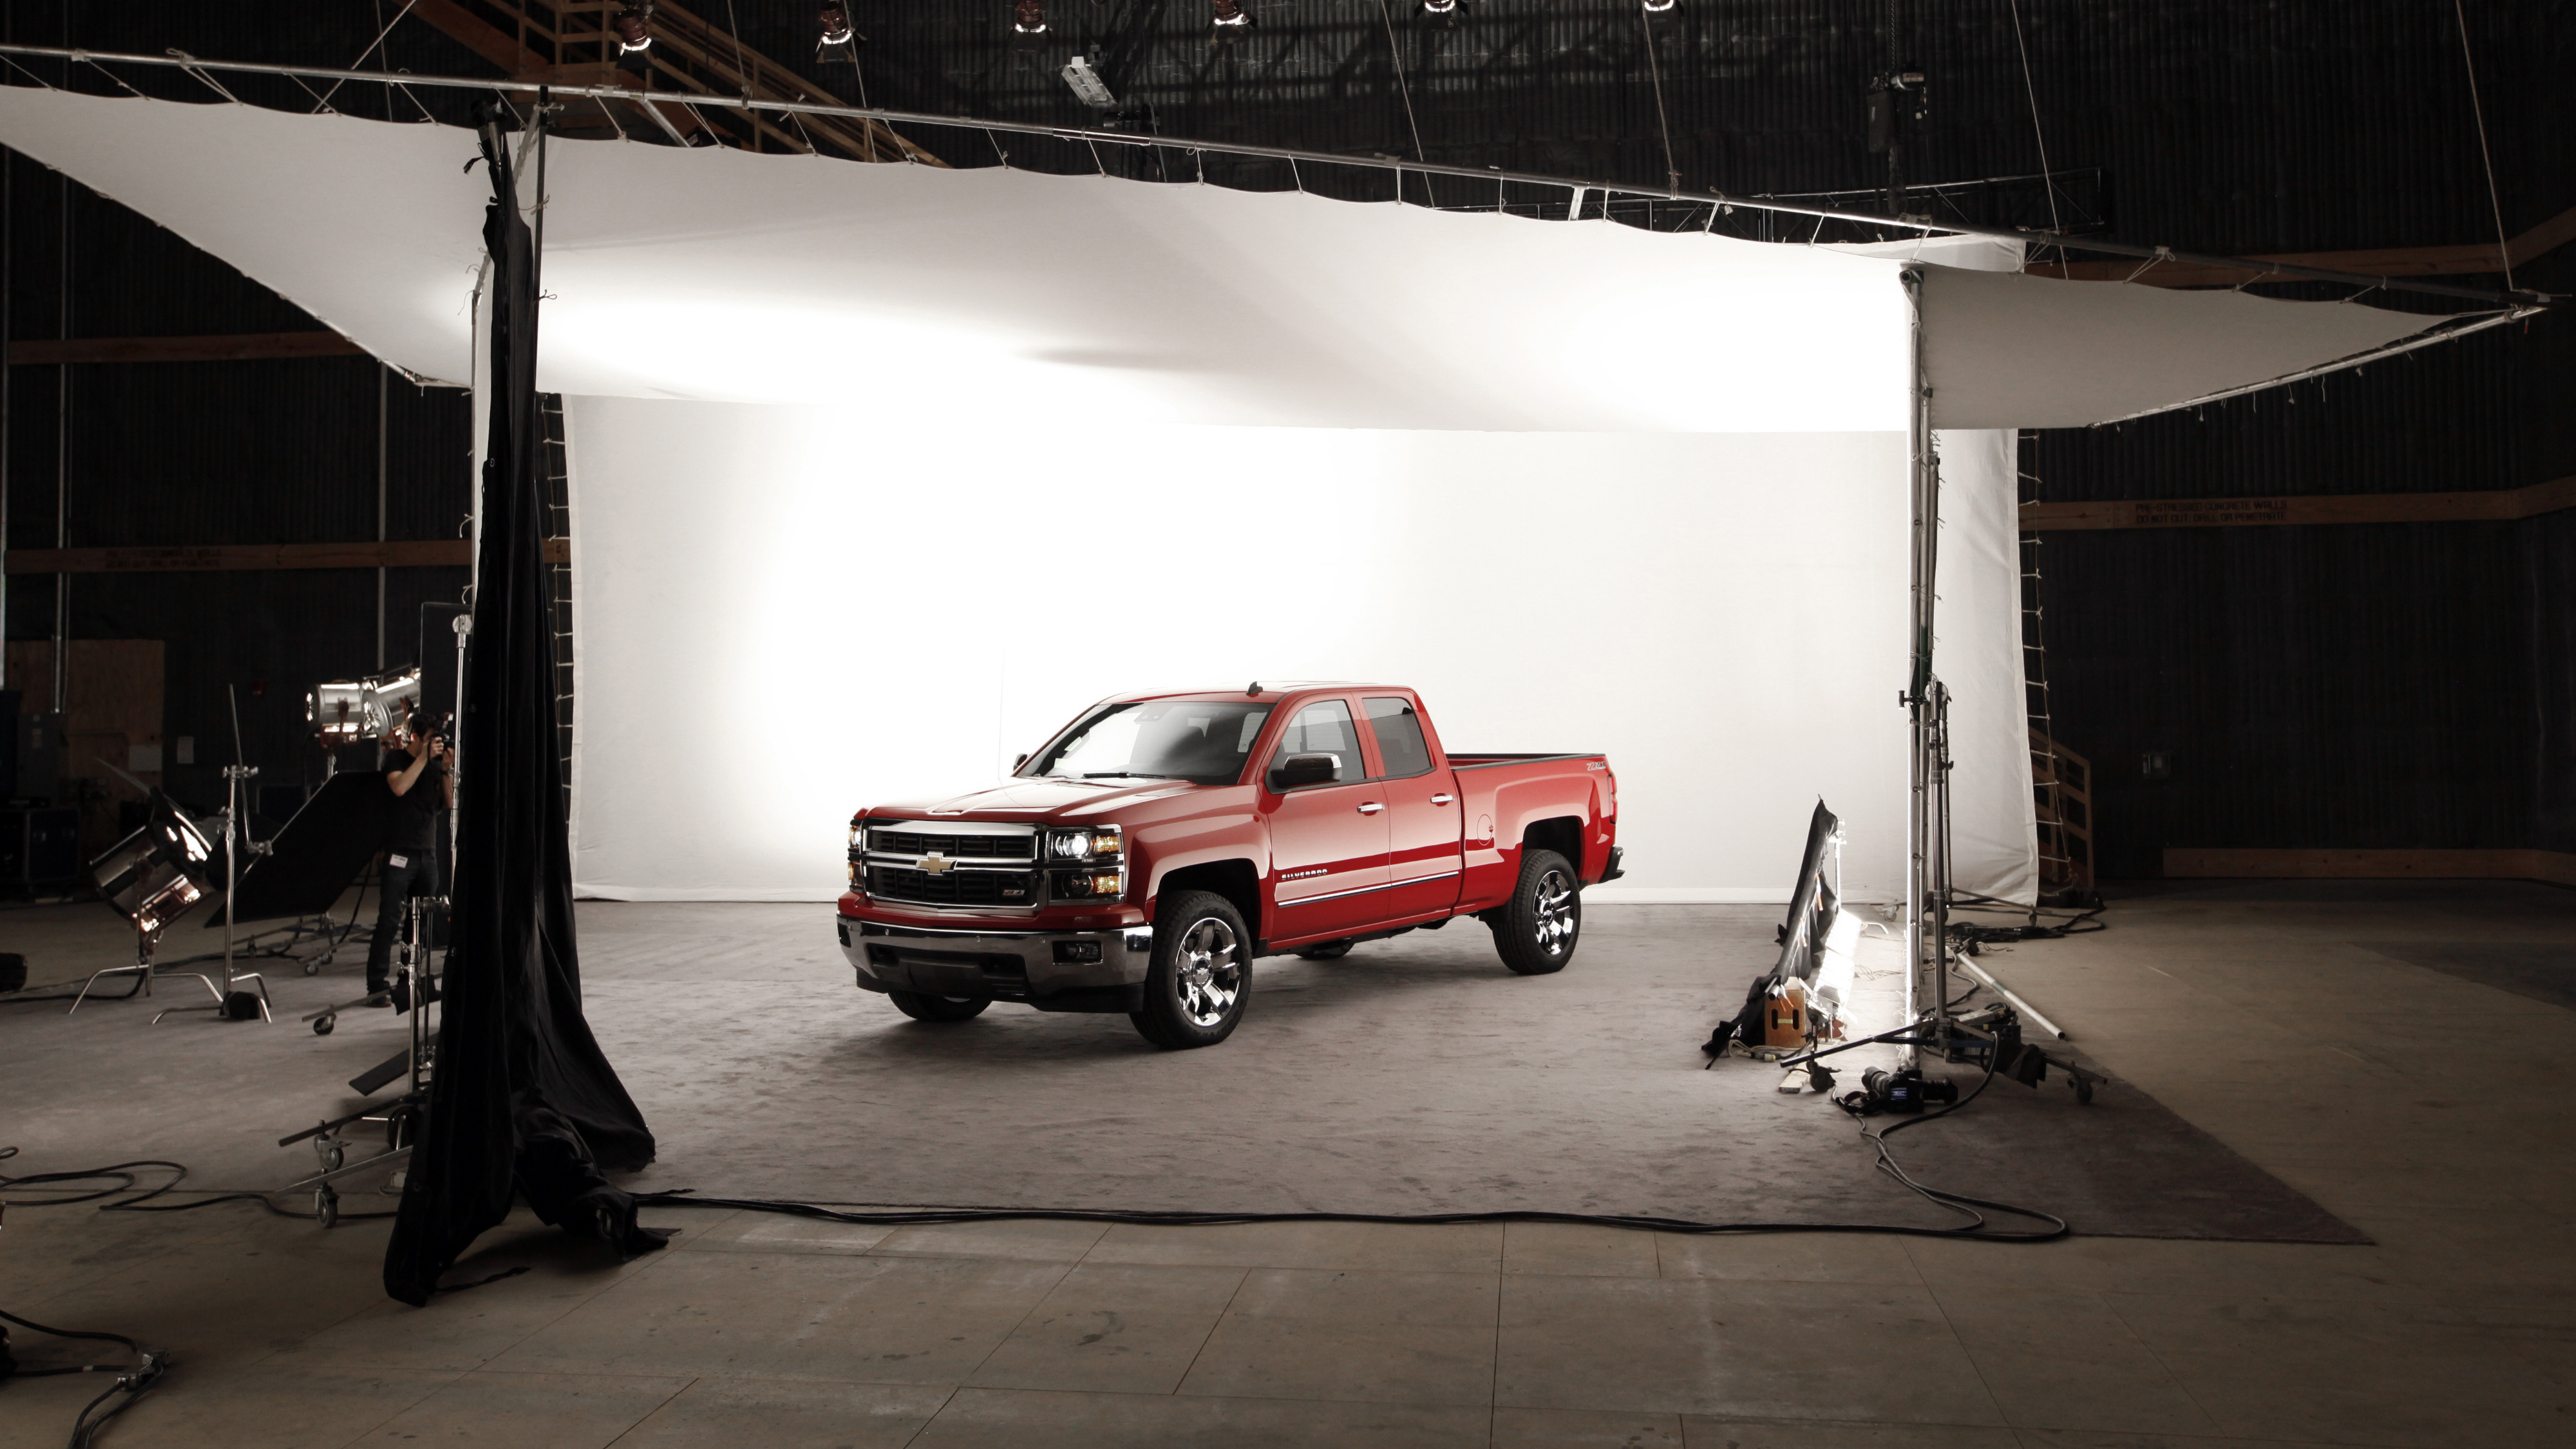 The 2014 Chevrolet Silverado Z71 debuts in Pontiac, Mich., Thursday, Dec. 13, 2012. General Motors unveiled the new versions of its top-selling Silverado and GMC Sierra Thursday. The models roll into a market where truck sales are growing after a five-year slump. (AP Photo/Paul Sancya)